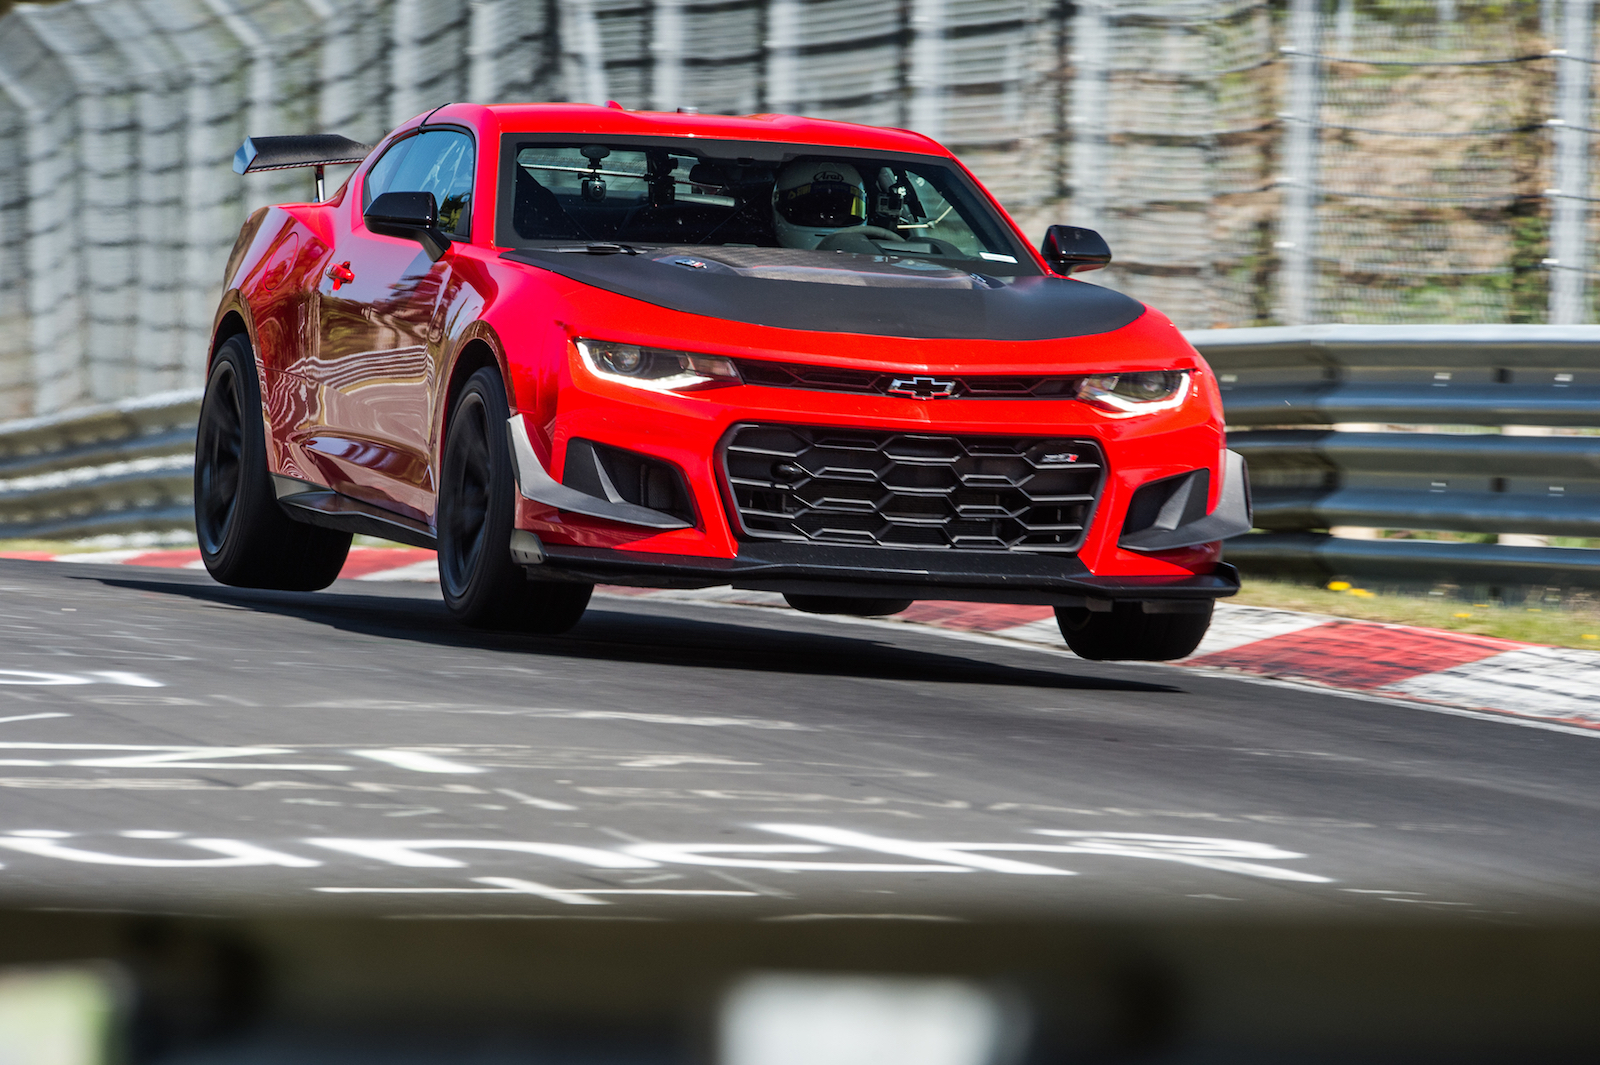 At 7 16 04 the 2018 chevrolet camaro zl1 1le is the fastest camaro to